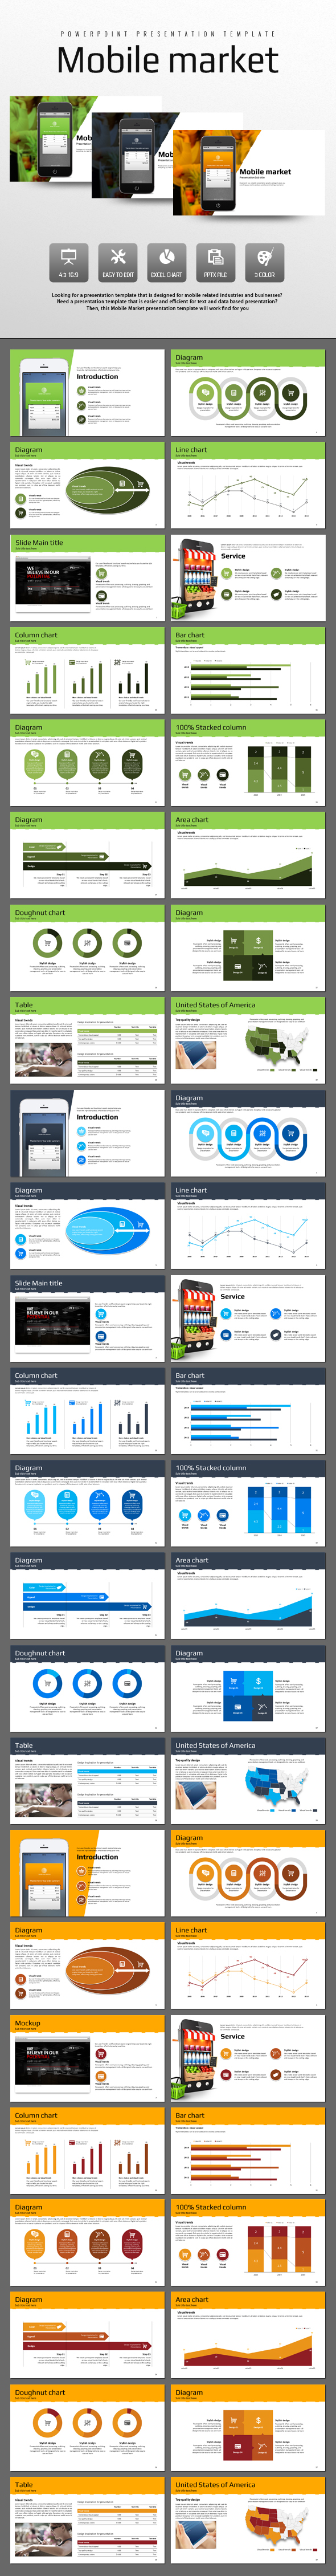 Mobile Market (PowerPoint Templates)